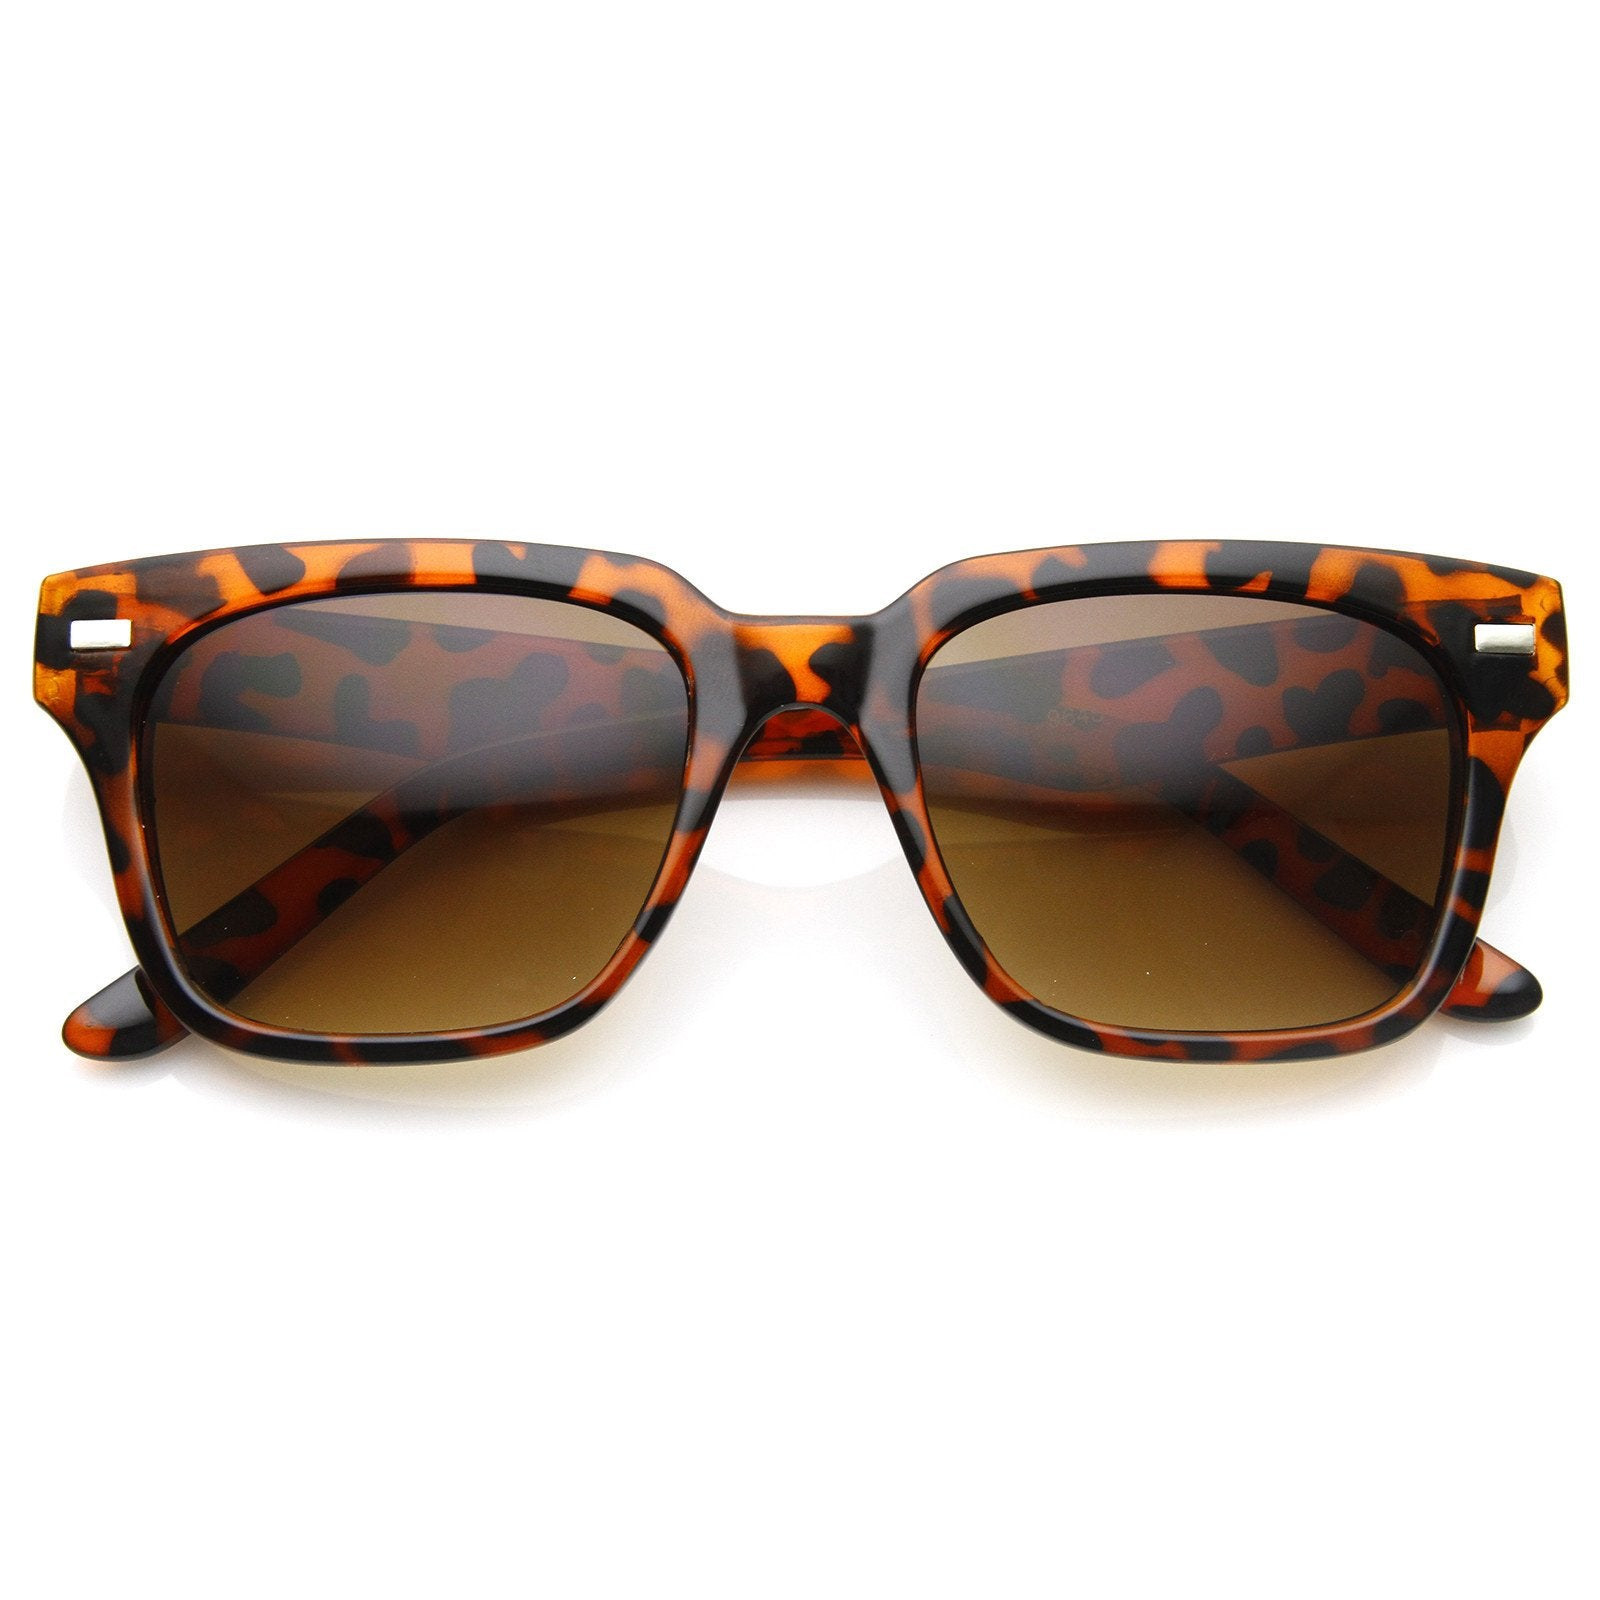 Vintage Era Inspired Horned Rim Sunglasses 8887